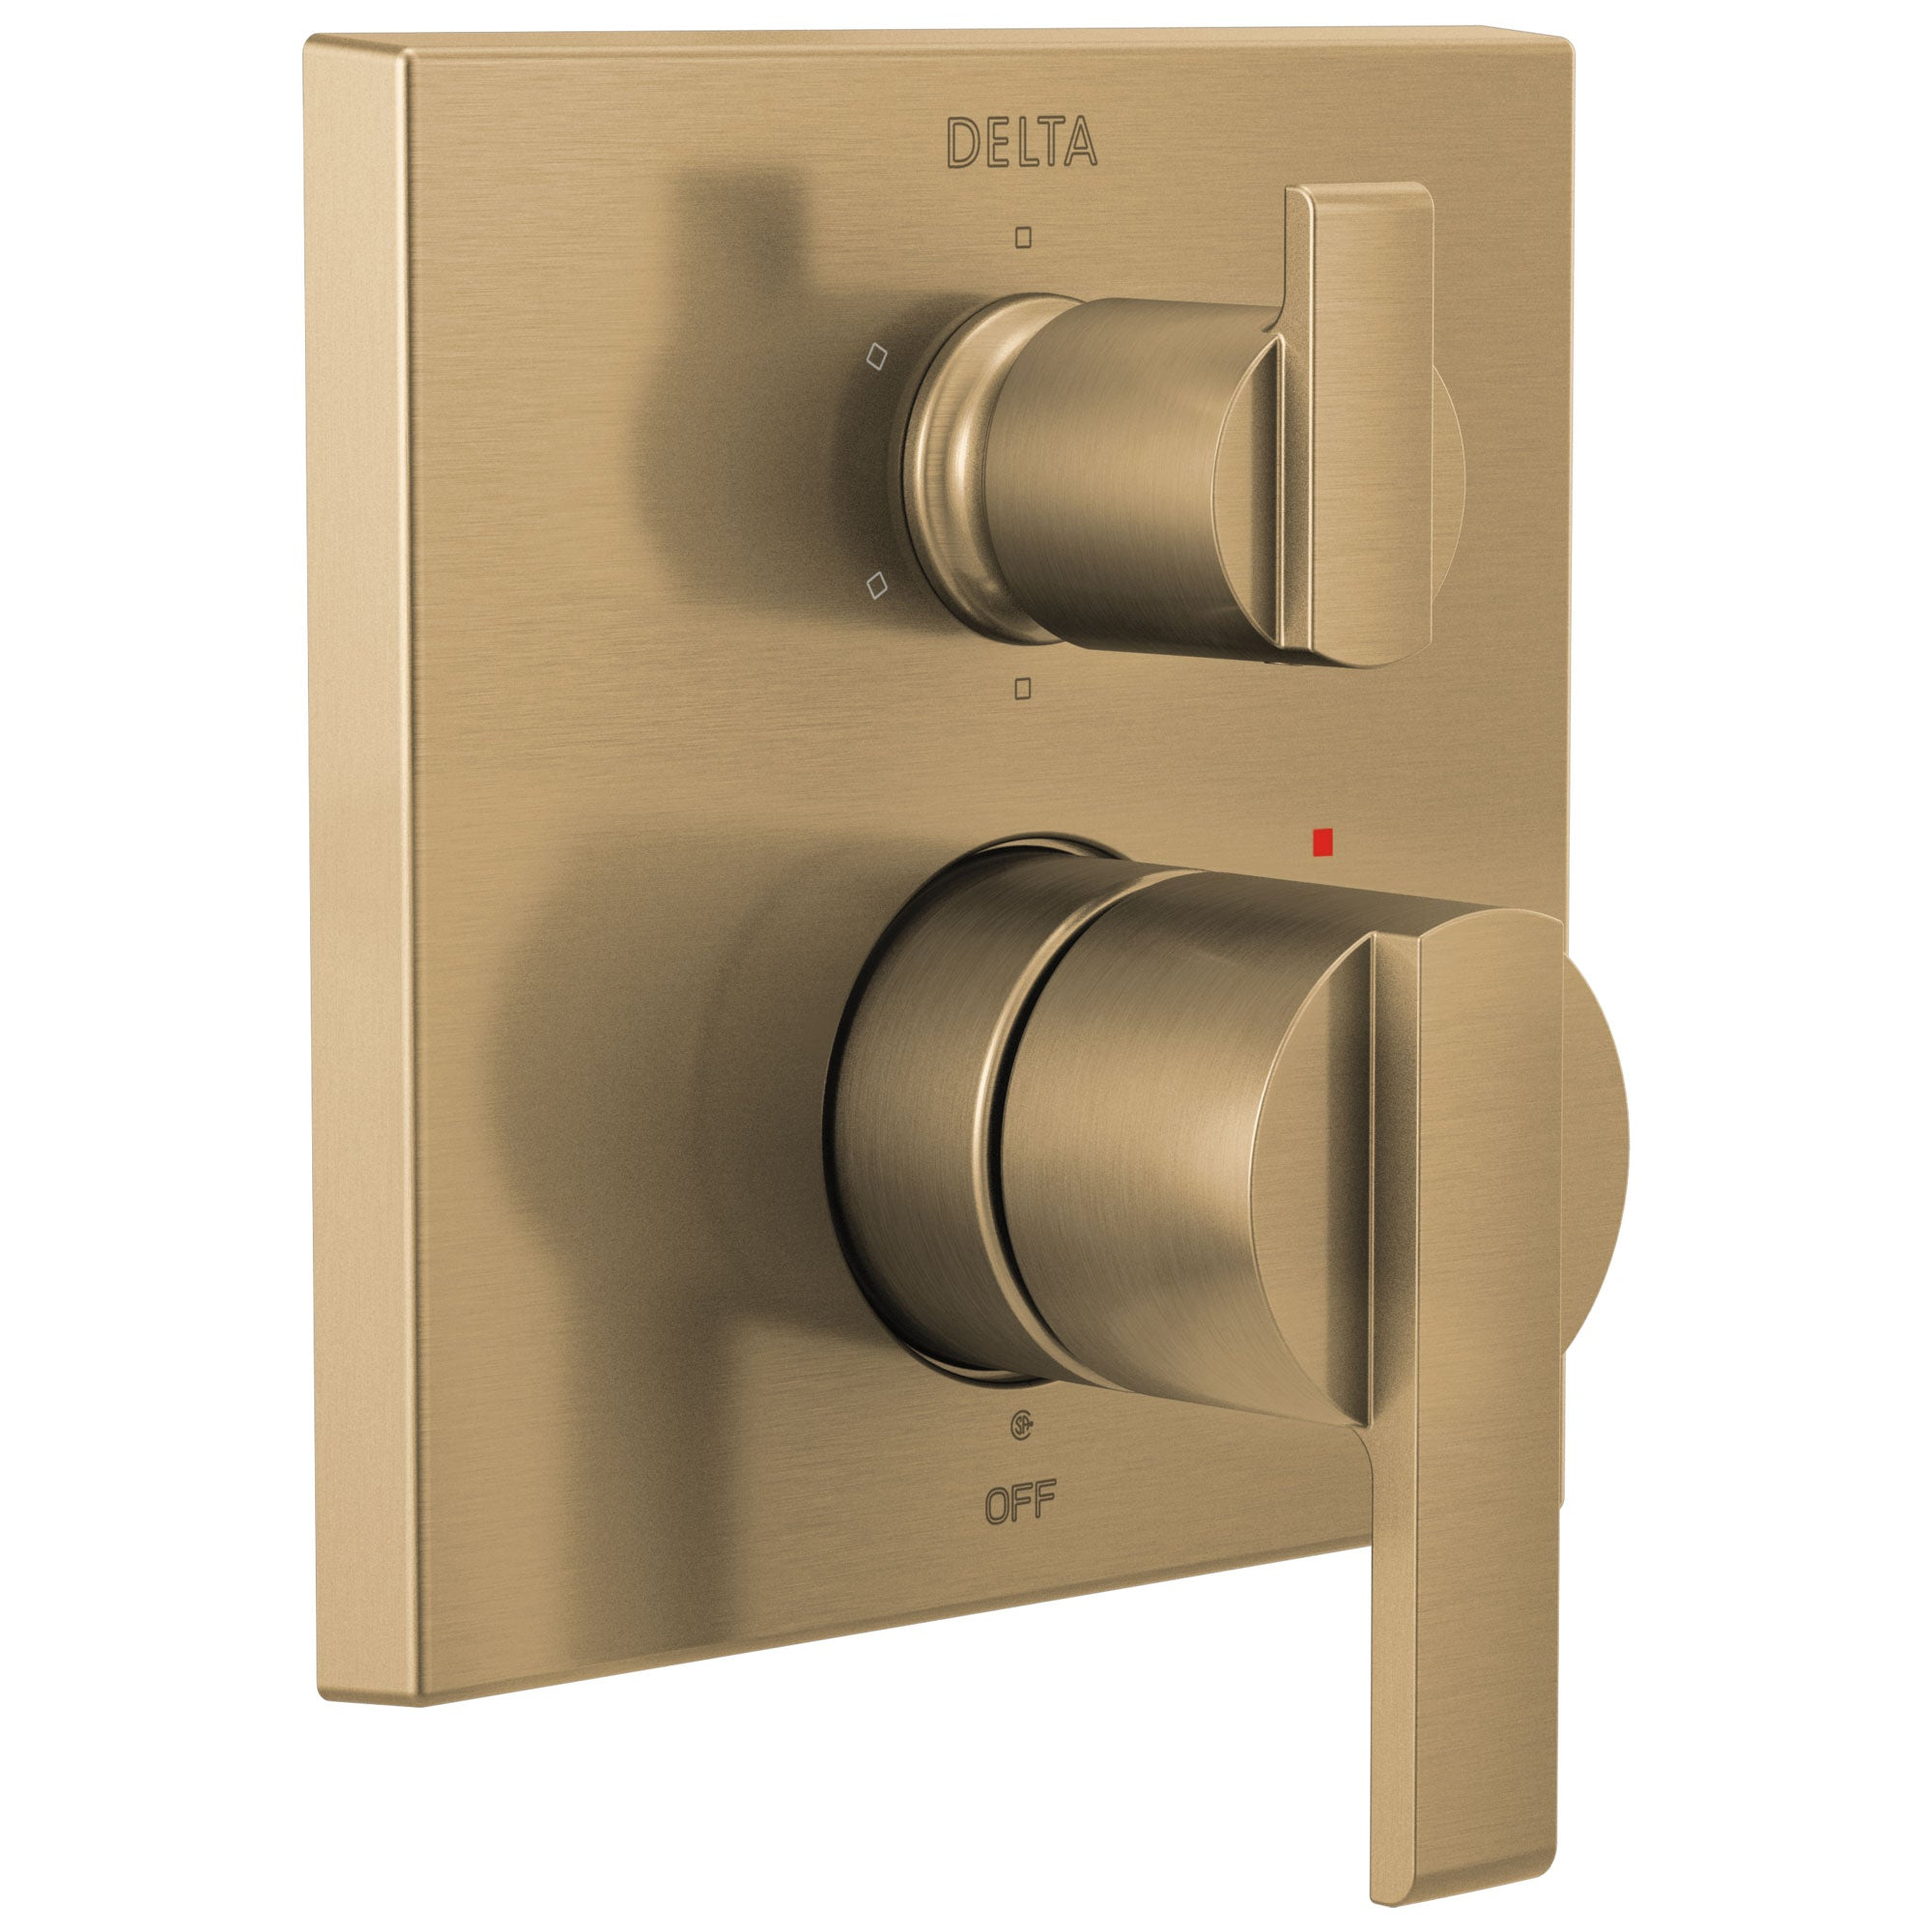 Delta Ara Champagne Bronze Finish Angular Modern 14 Series Shower System Control with 6-Setting Integrated Diverter Includes Valve and Handles D3184V